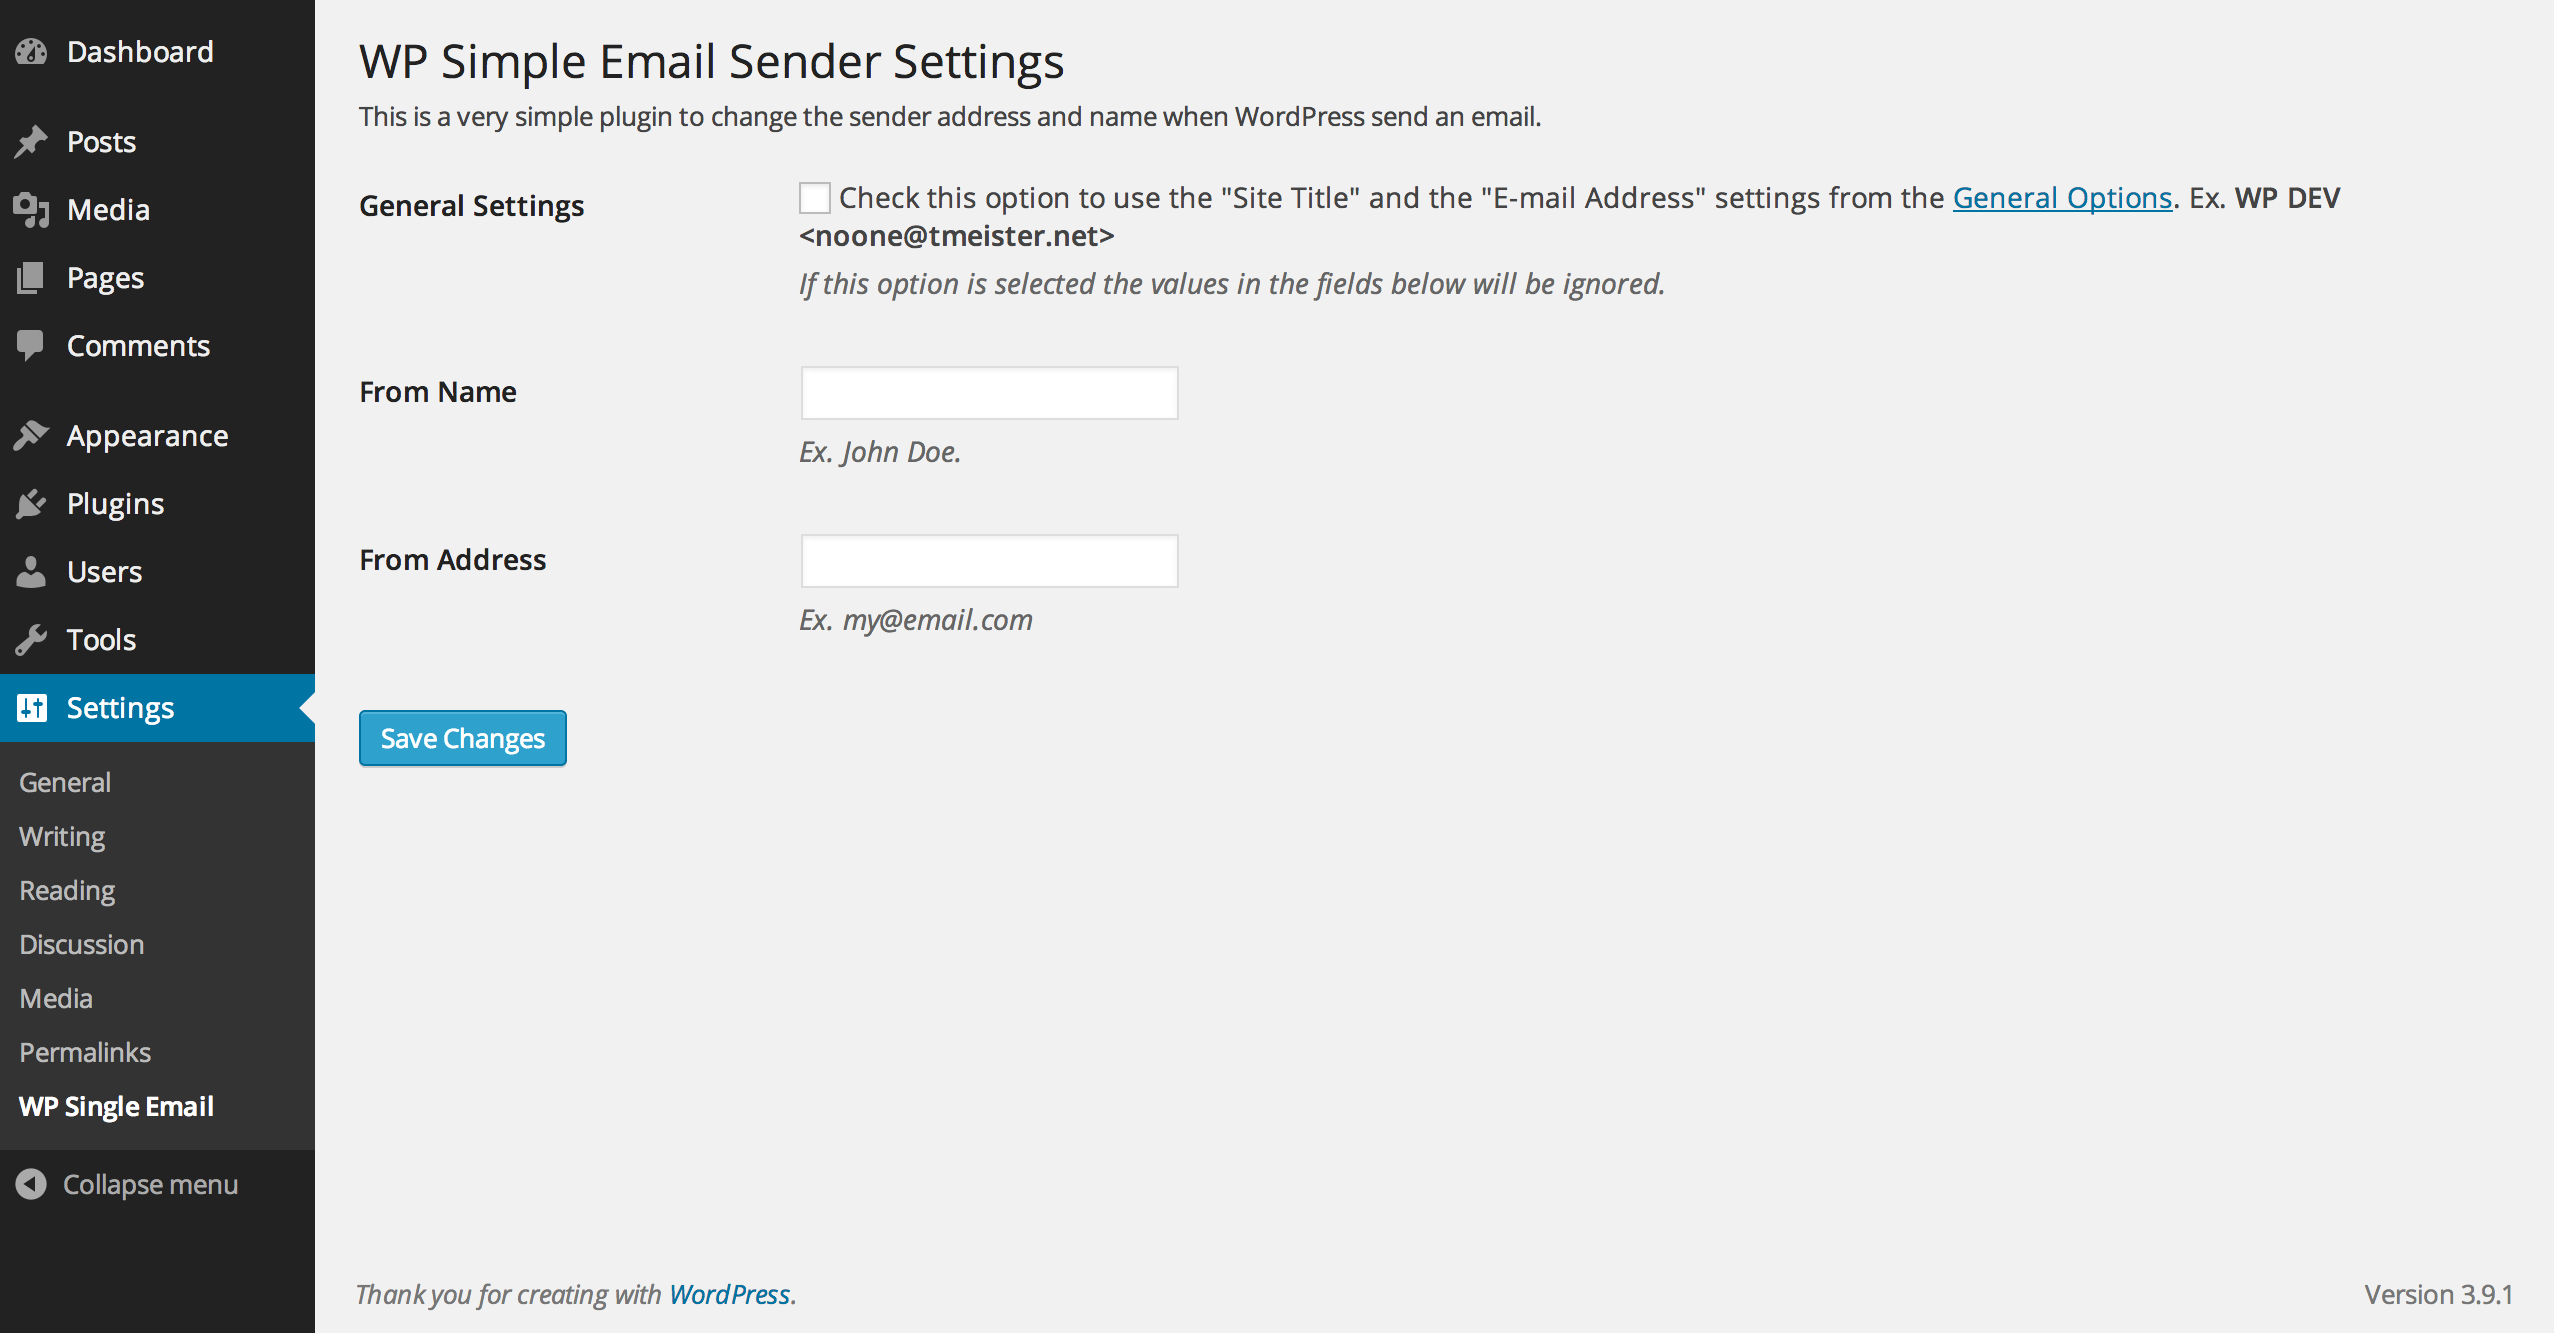 WP Single Email Sender Settings Page